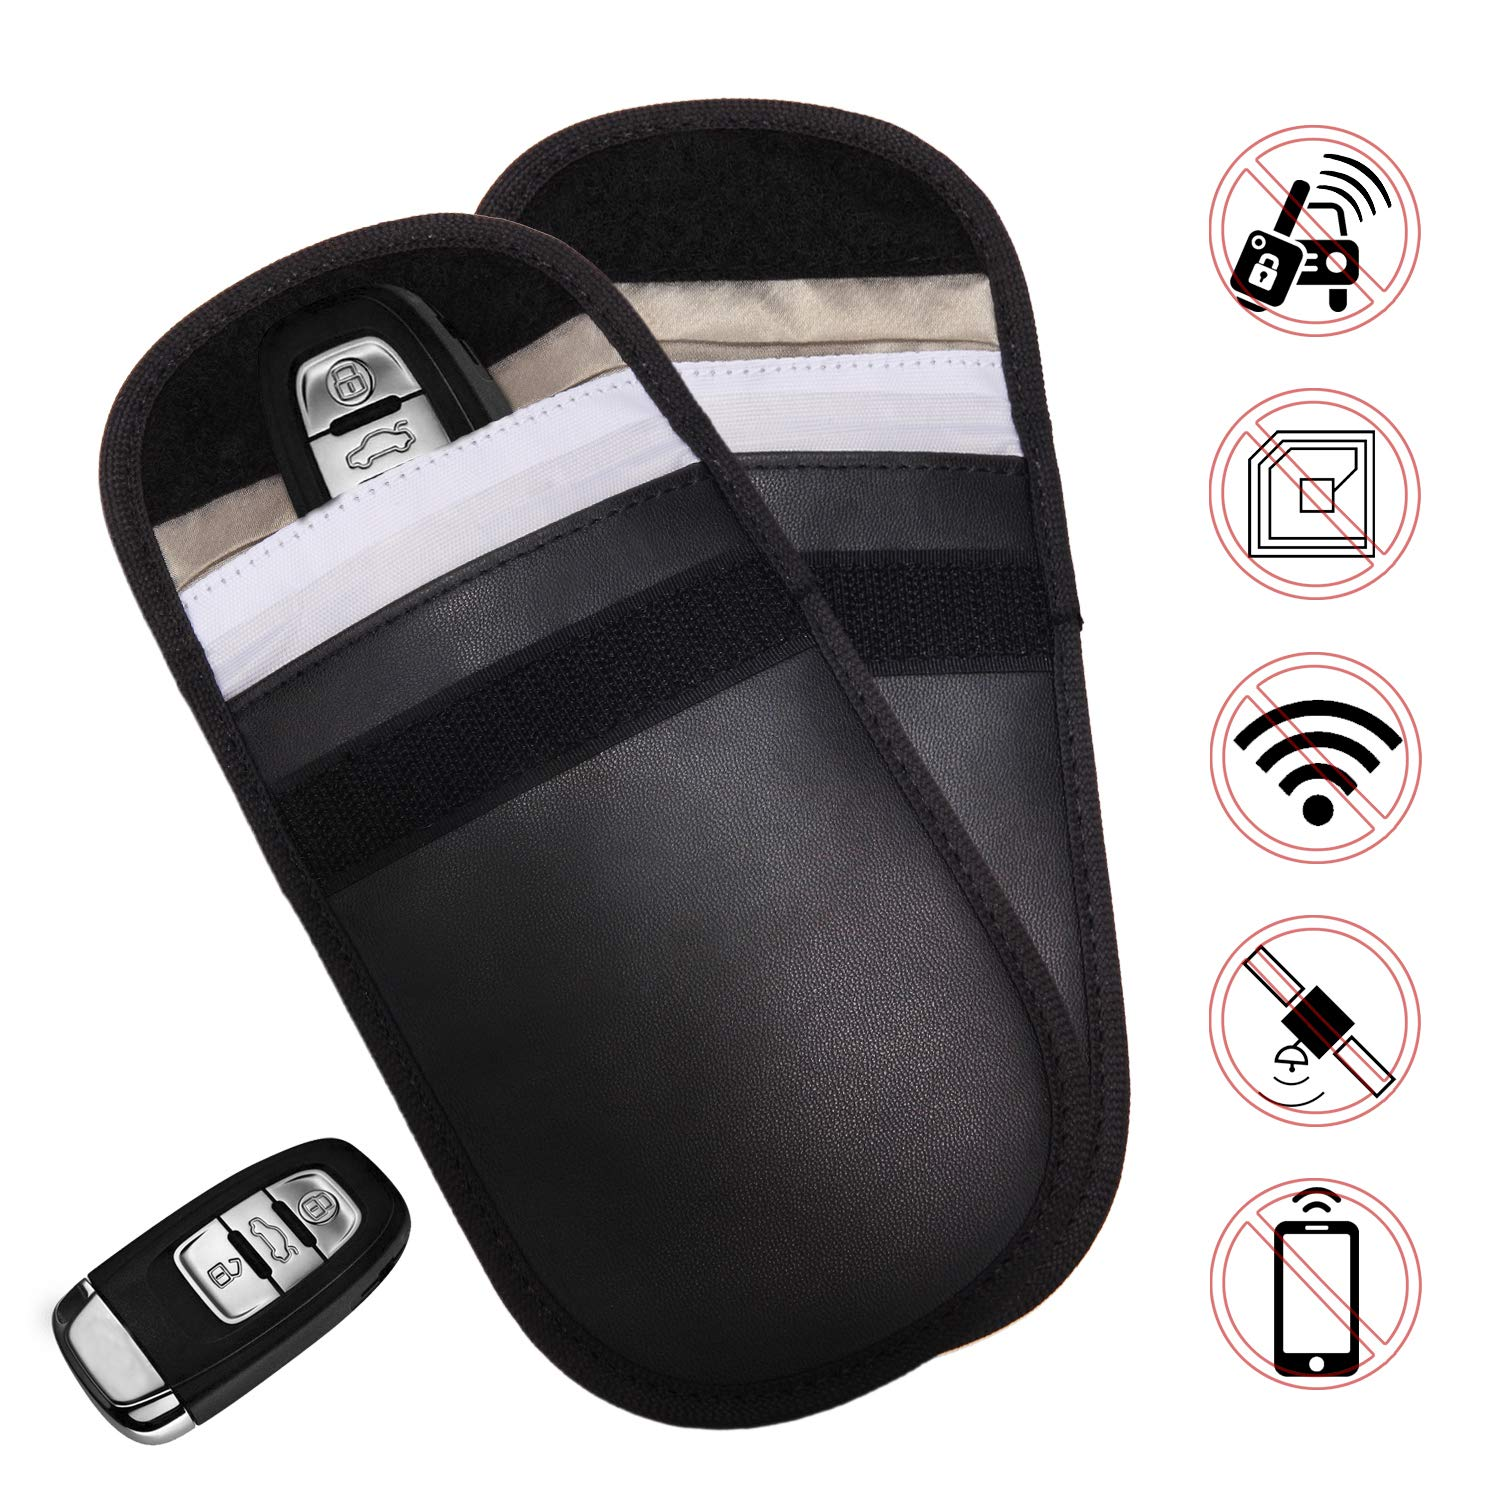 Ruconla Car Key Signal Blocker Case 2 Pack Secure Signal Blocker Pouch Bag RFID Blocking Credit Card Protector Antitheft Lock Devices Block Any Signal of WiFi/GSM/LTE/NFC/RFID Shenzhen Hi-Fortune Technology Co. Ltd